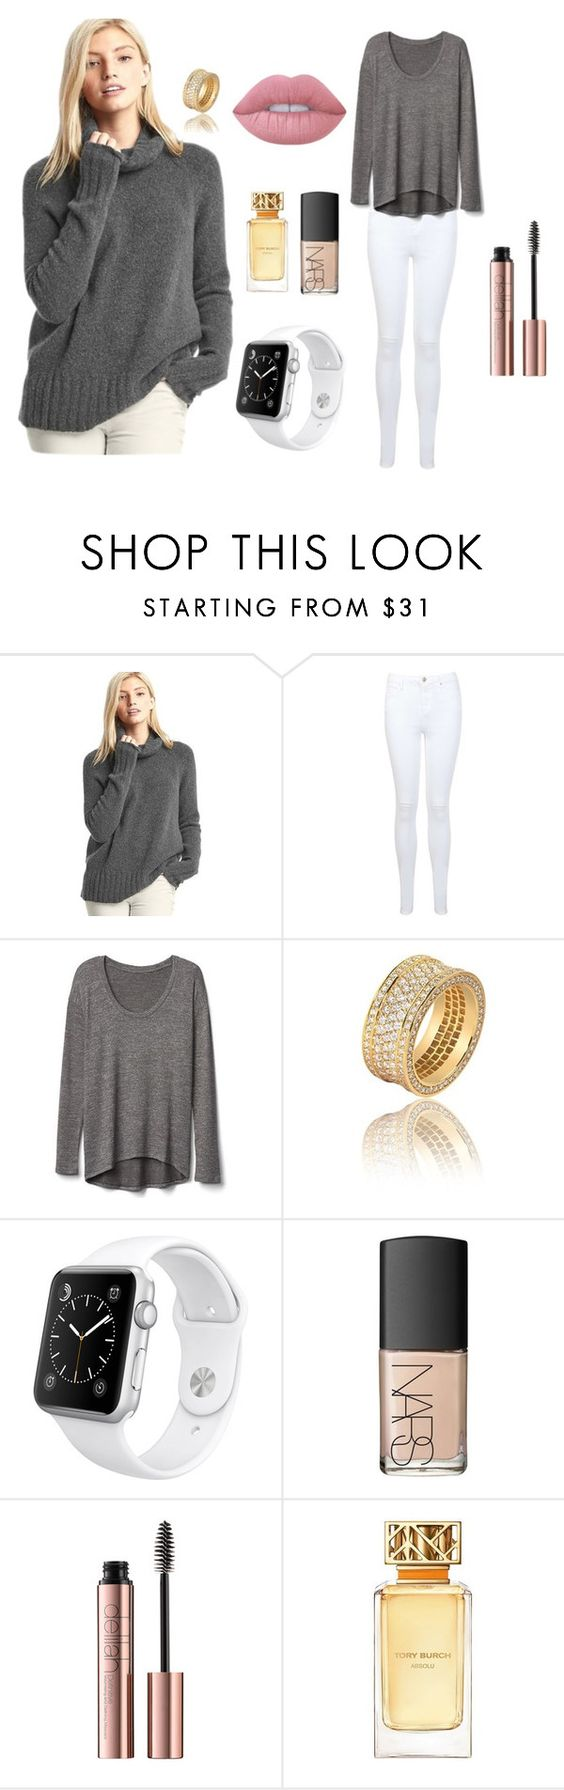 """""""Dunno what to call it"""" by cutiepug ❤ liked on Polyvore featuring Gap, Miss Selfridge, Apple, NARS Cosmetics, Tory Burch and Lime Crime"""